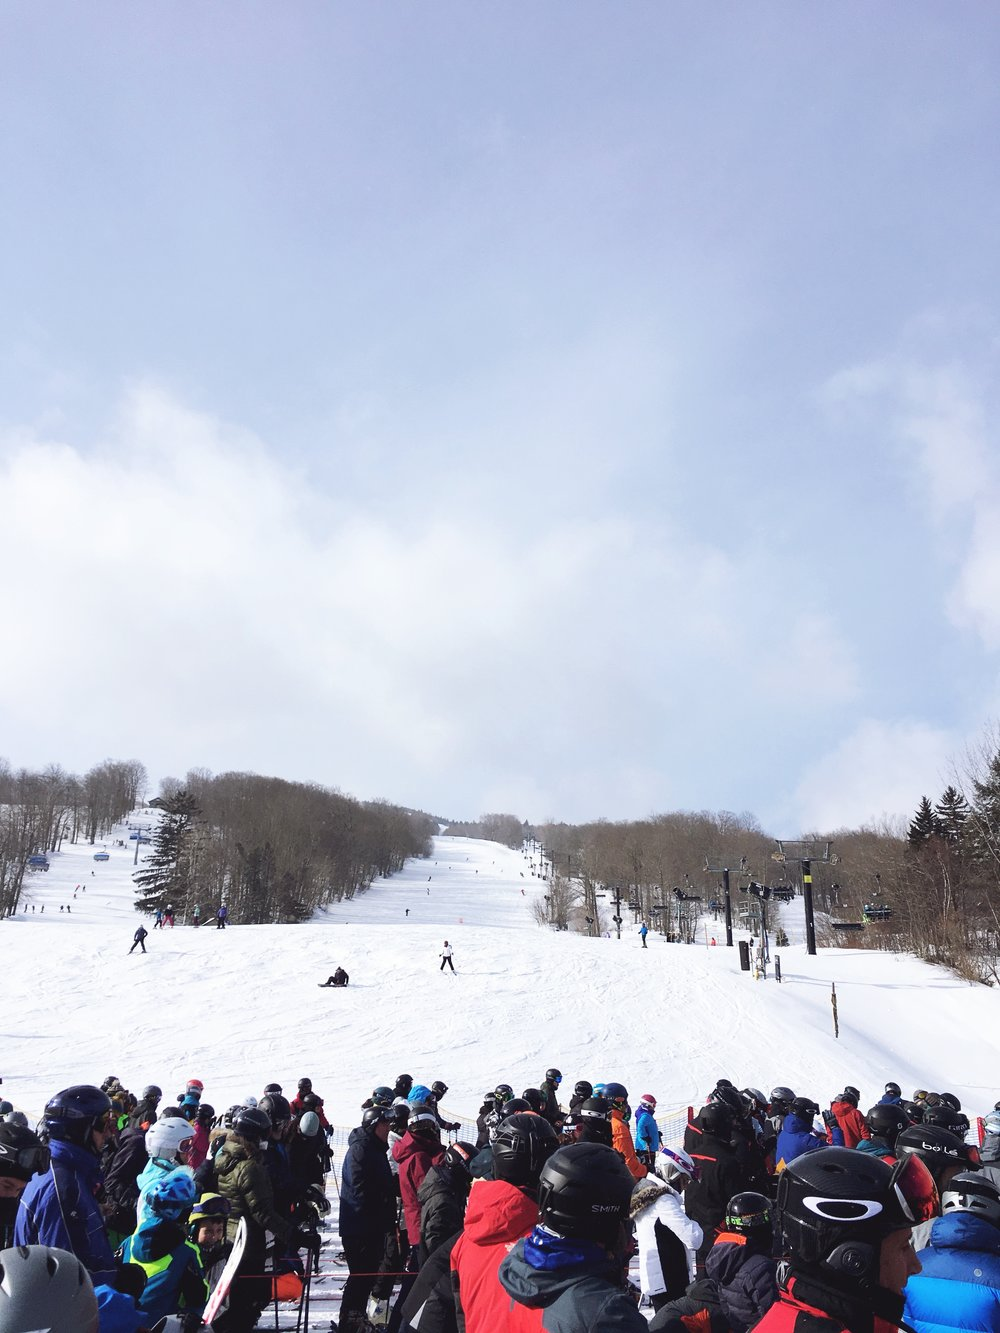 Braving the crowds at the base of Mount Snow